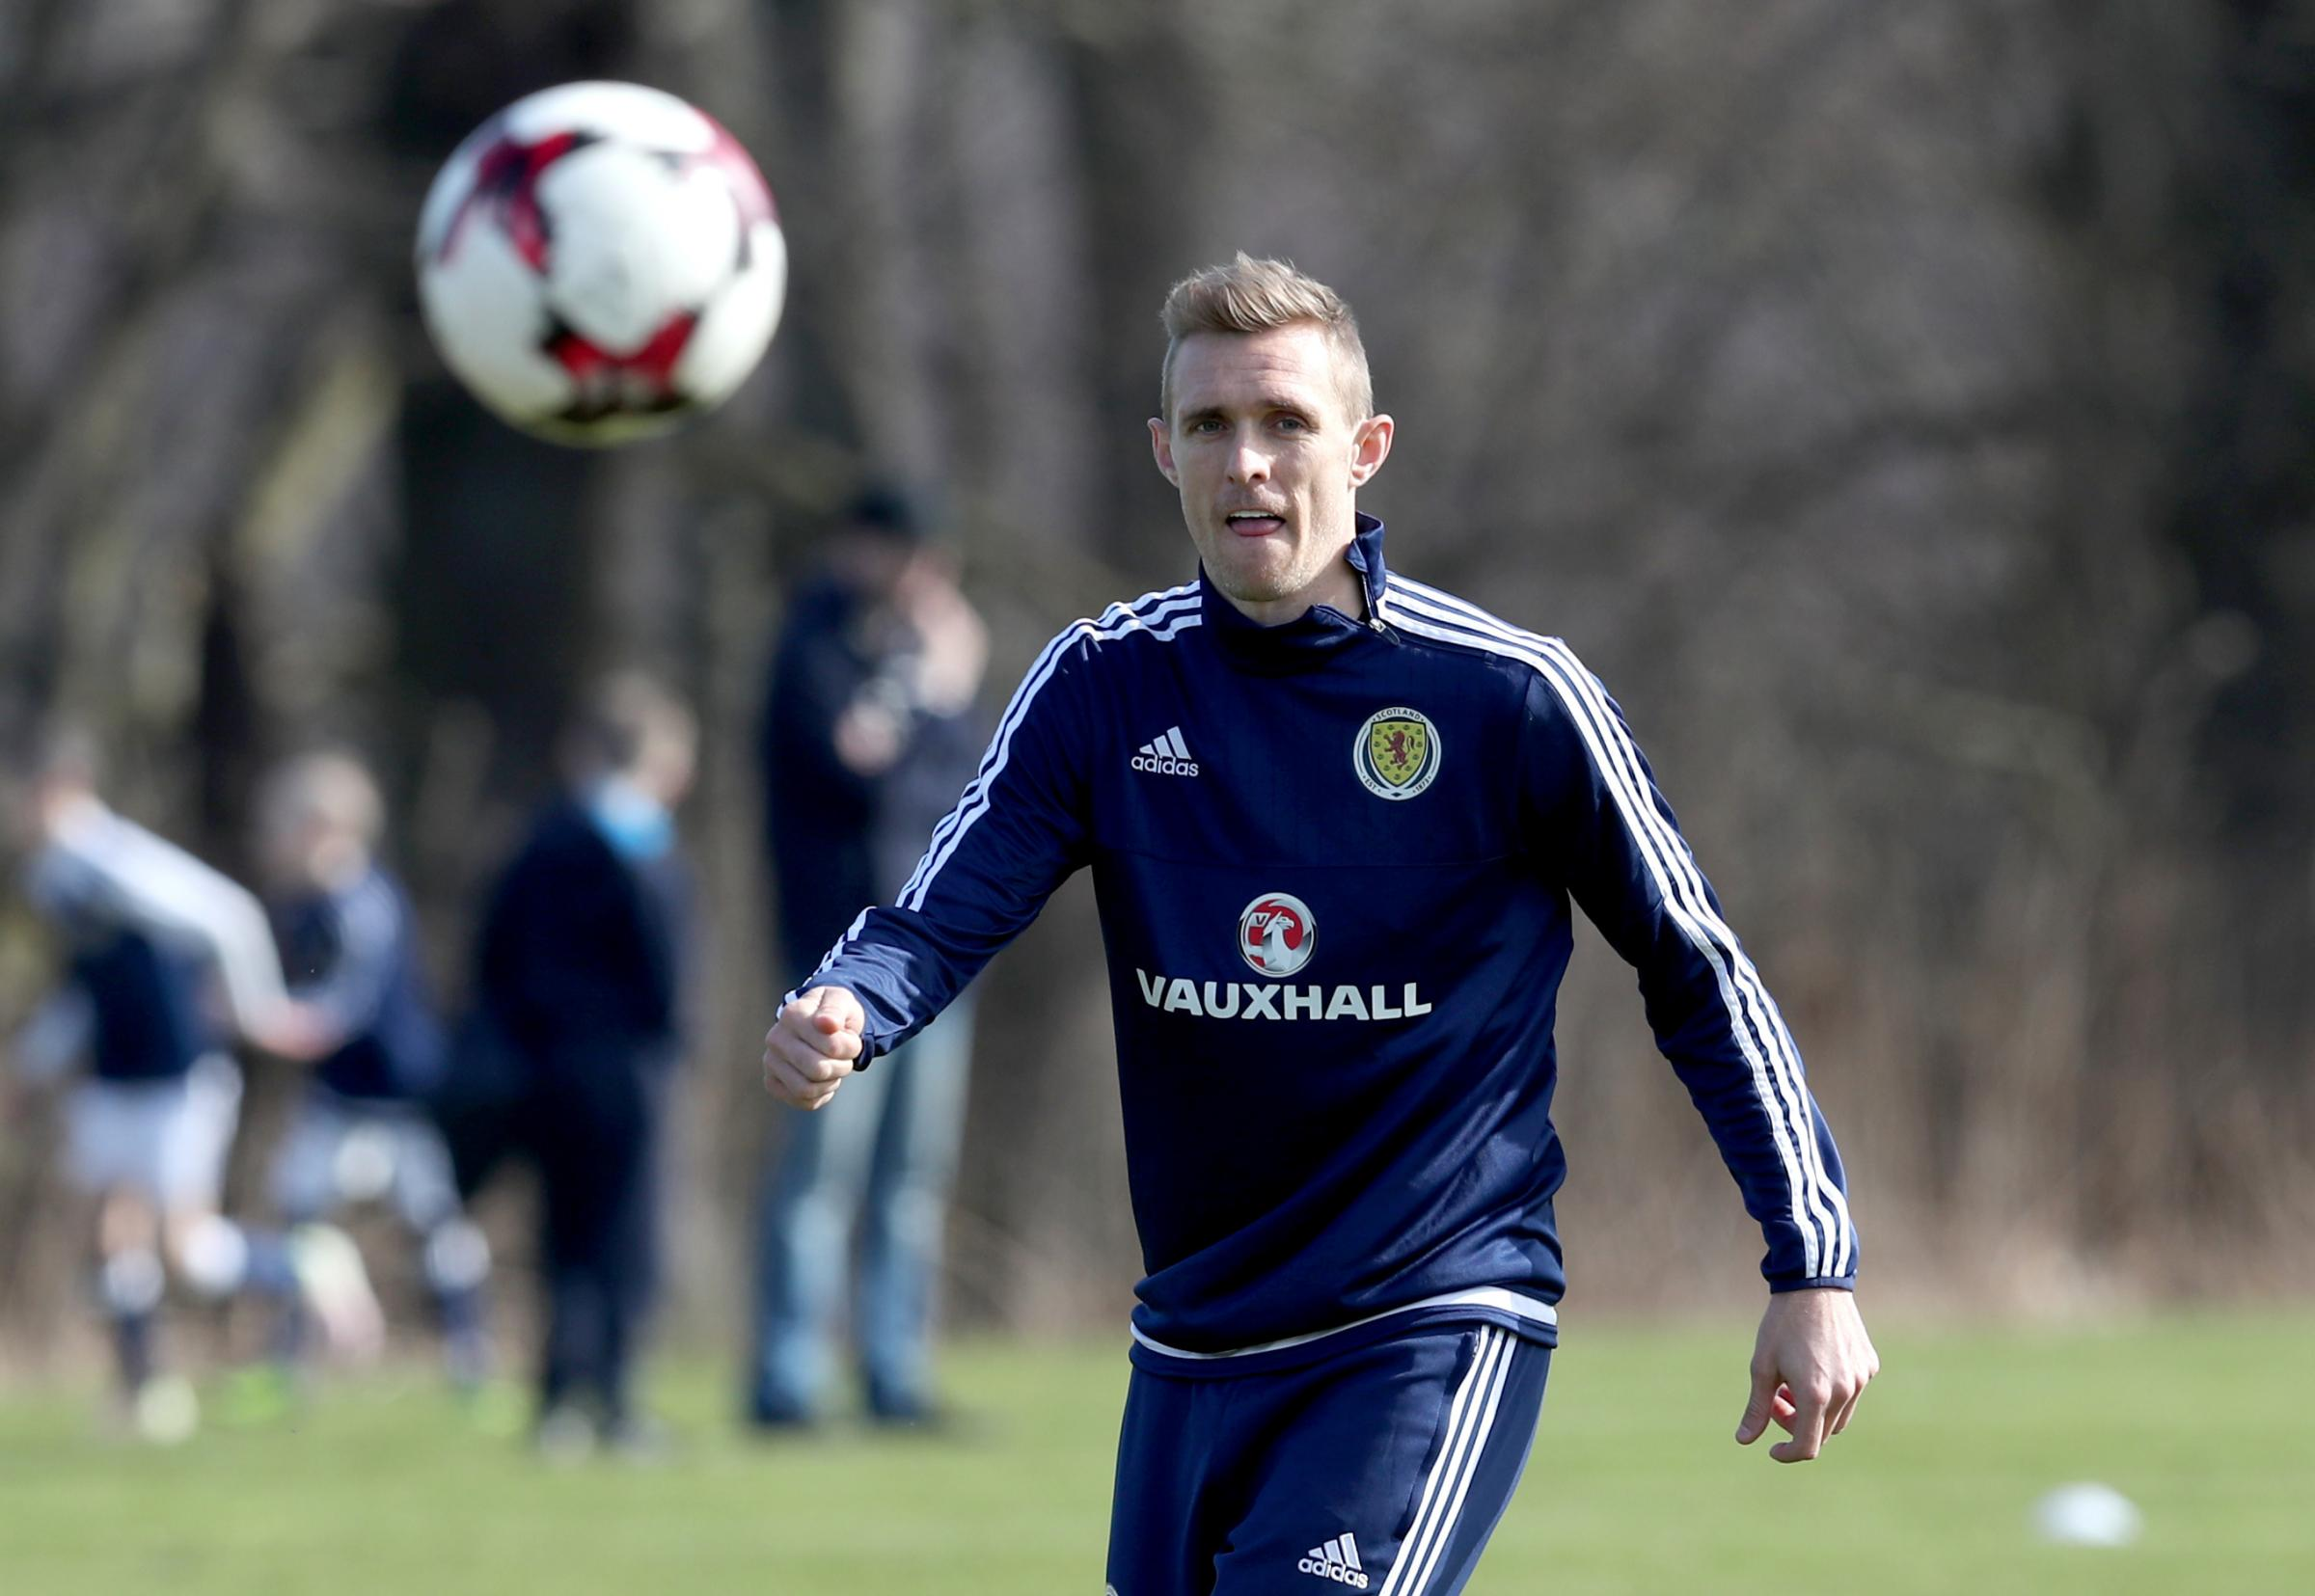 ILLNESS: Footballer Darren Fletcher has spoken publicly of his battle with ulcerative colitis. He was diagnosed in 2011 but returned to the game after surgery Picture: PA